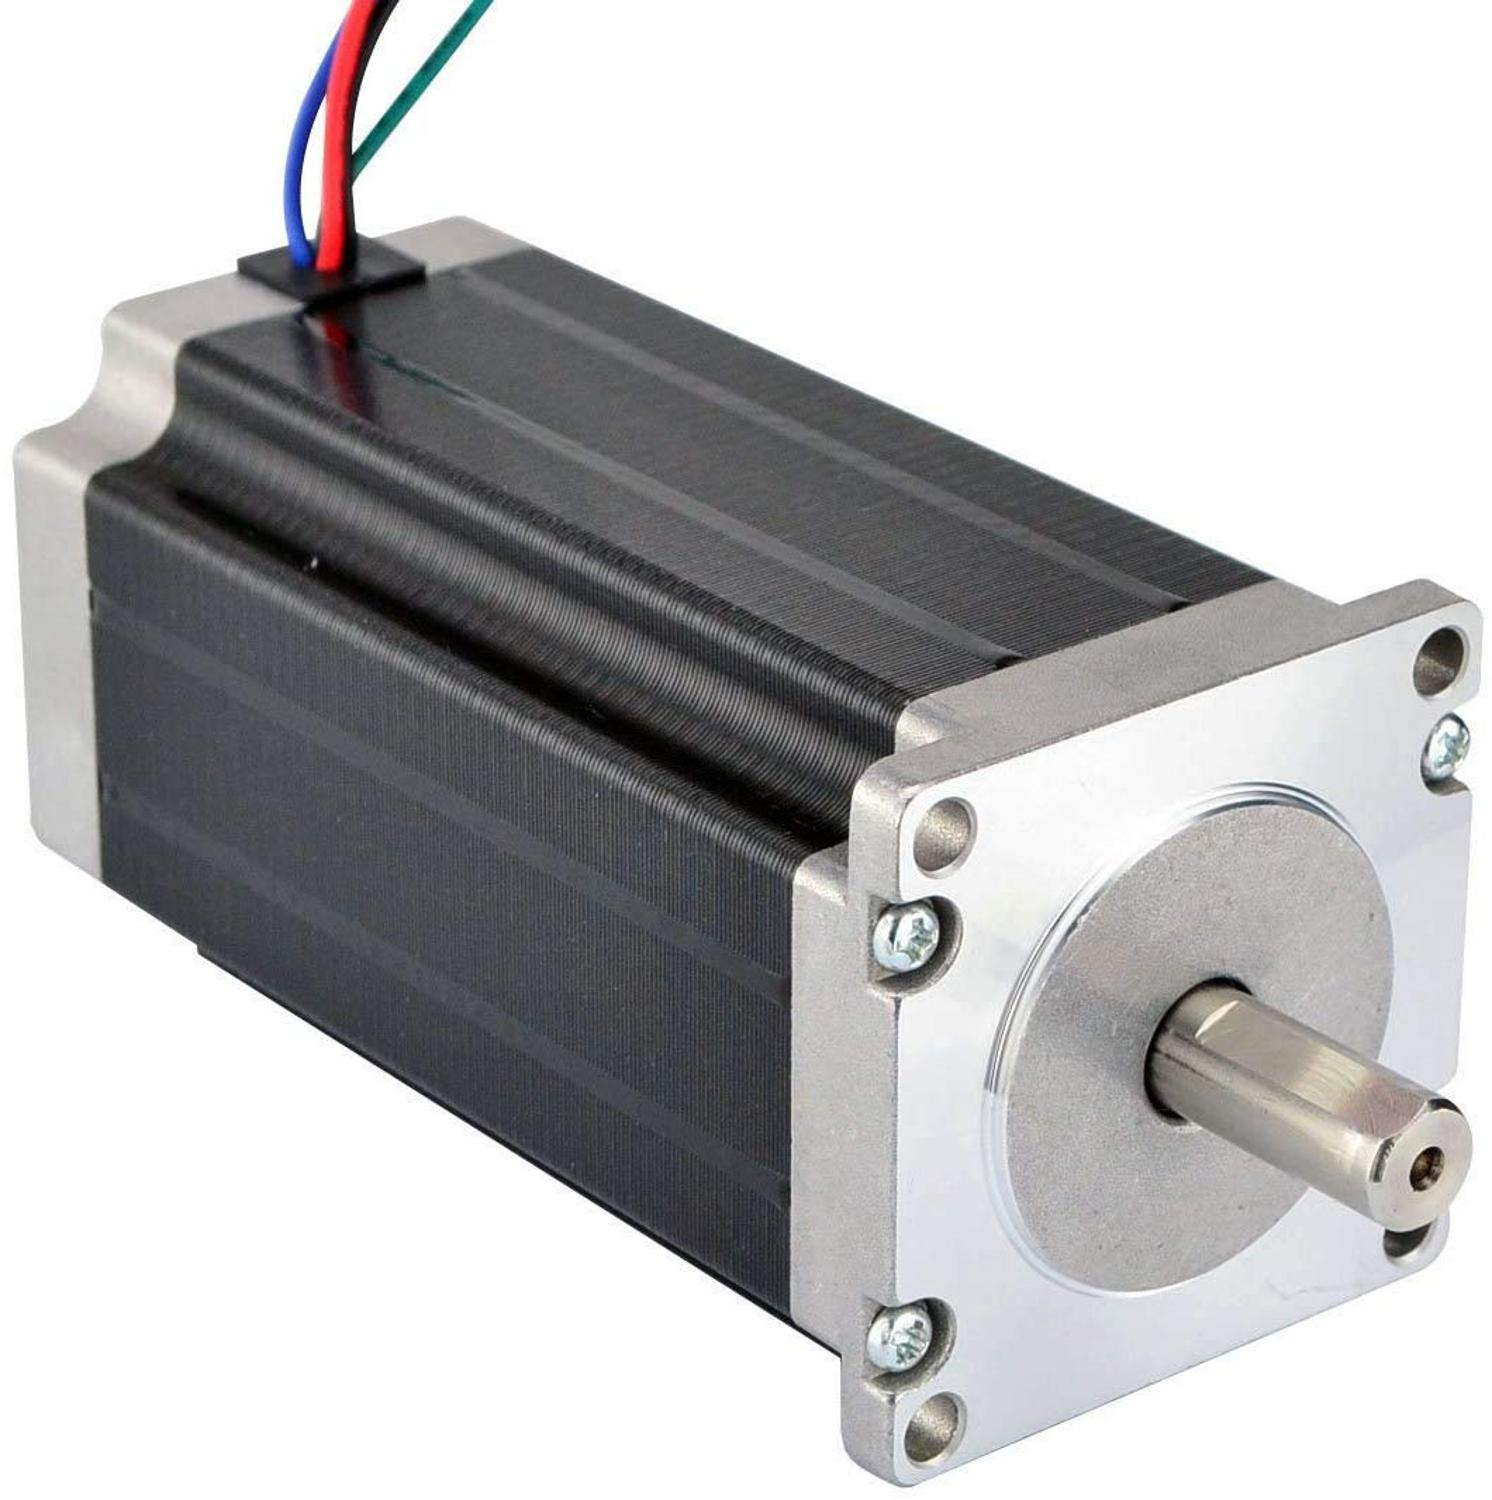 Wantai Nema23 Stepper Motor 57BYGH440-13 Single Shaft 177oz-in 56mm 4A CE ROHS ISO CNC Router Laser Printer Robot